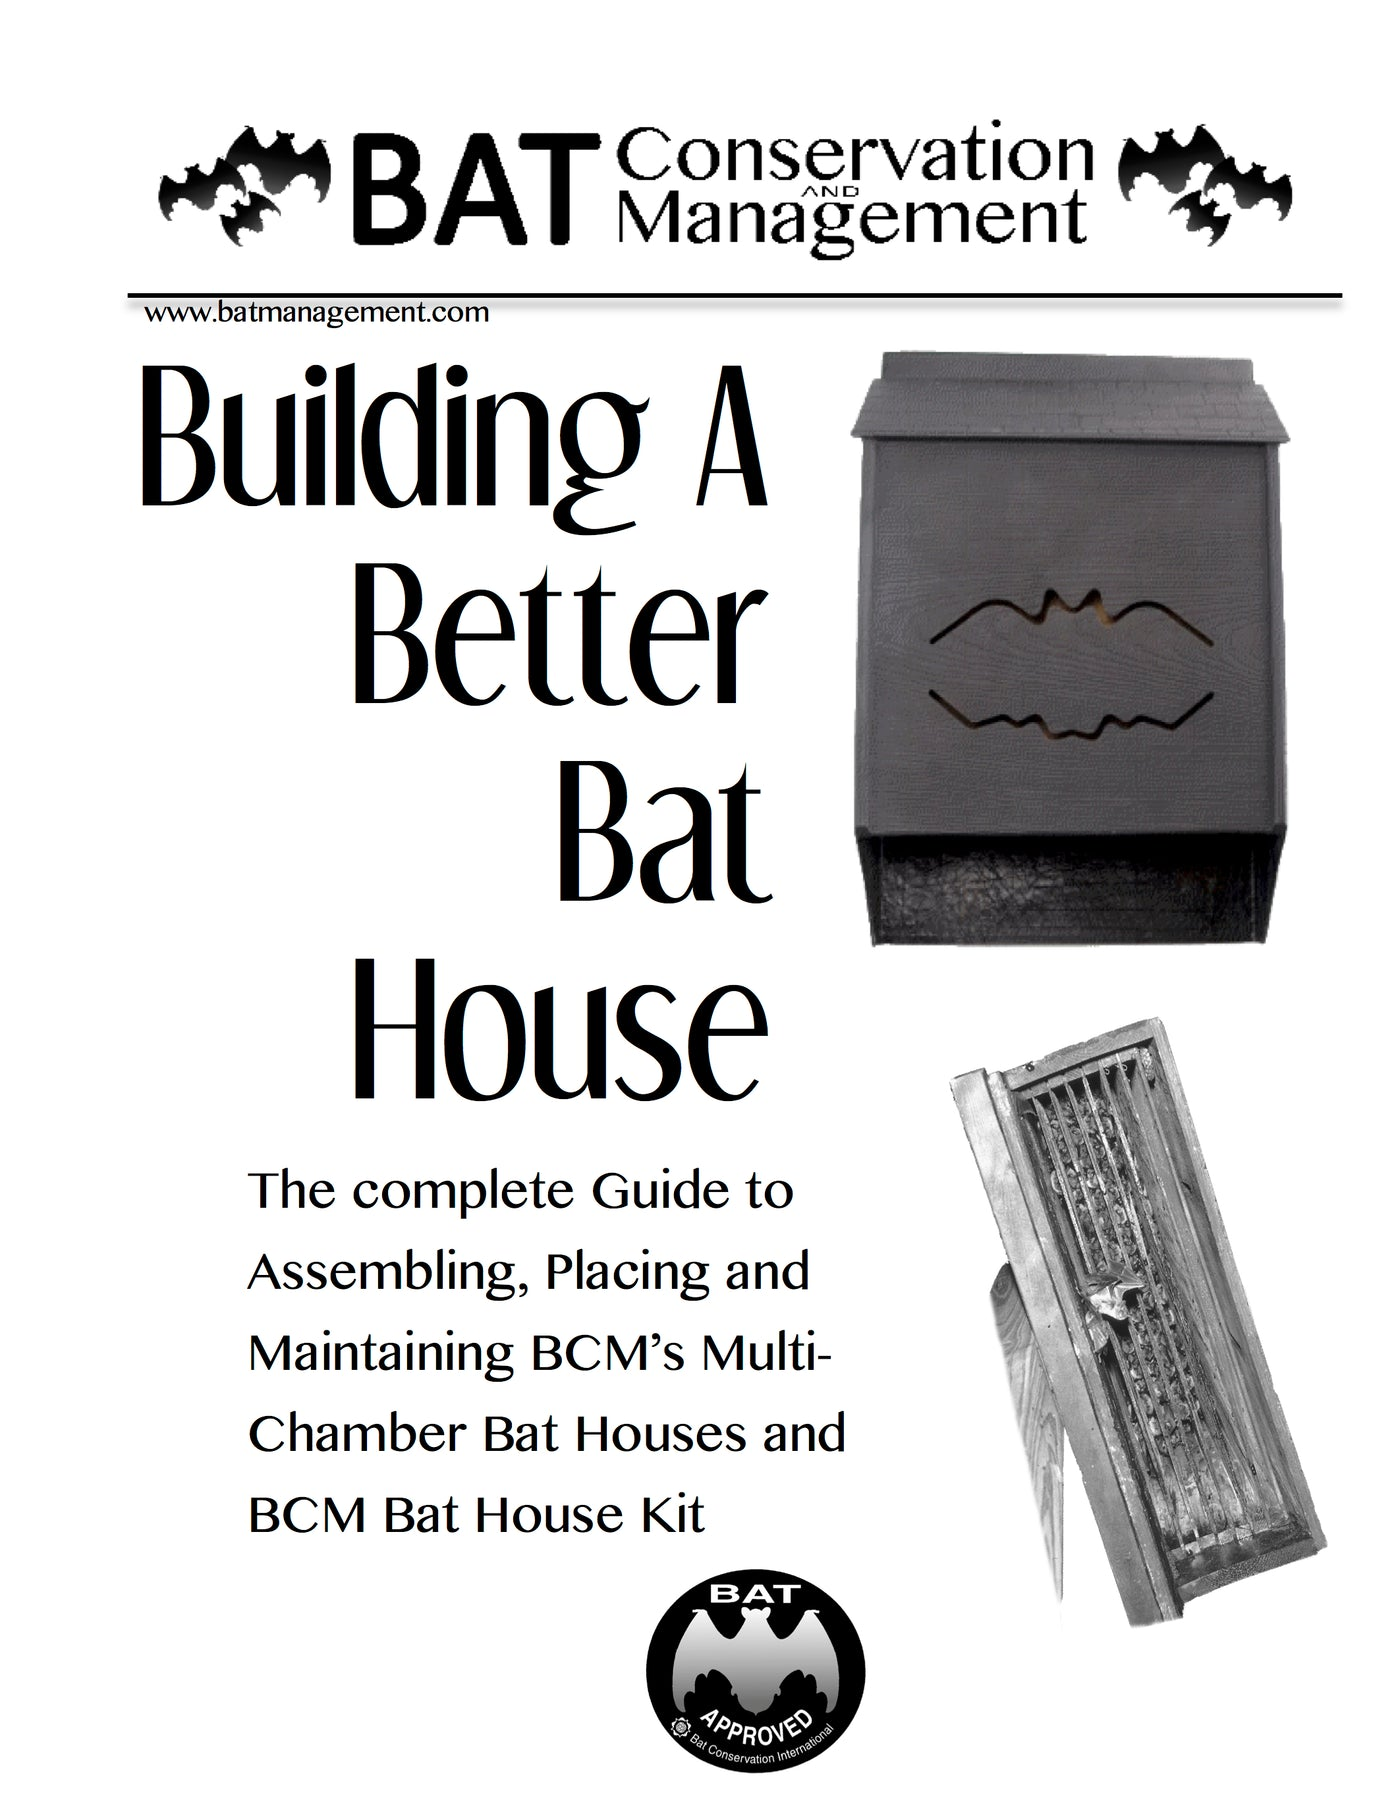 BCM Bat House Plans – Bat Conservation and Management Inc